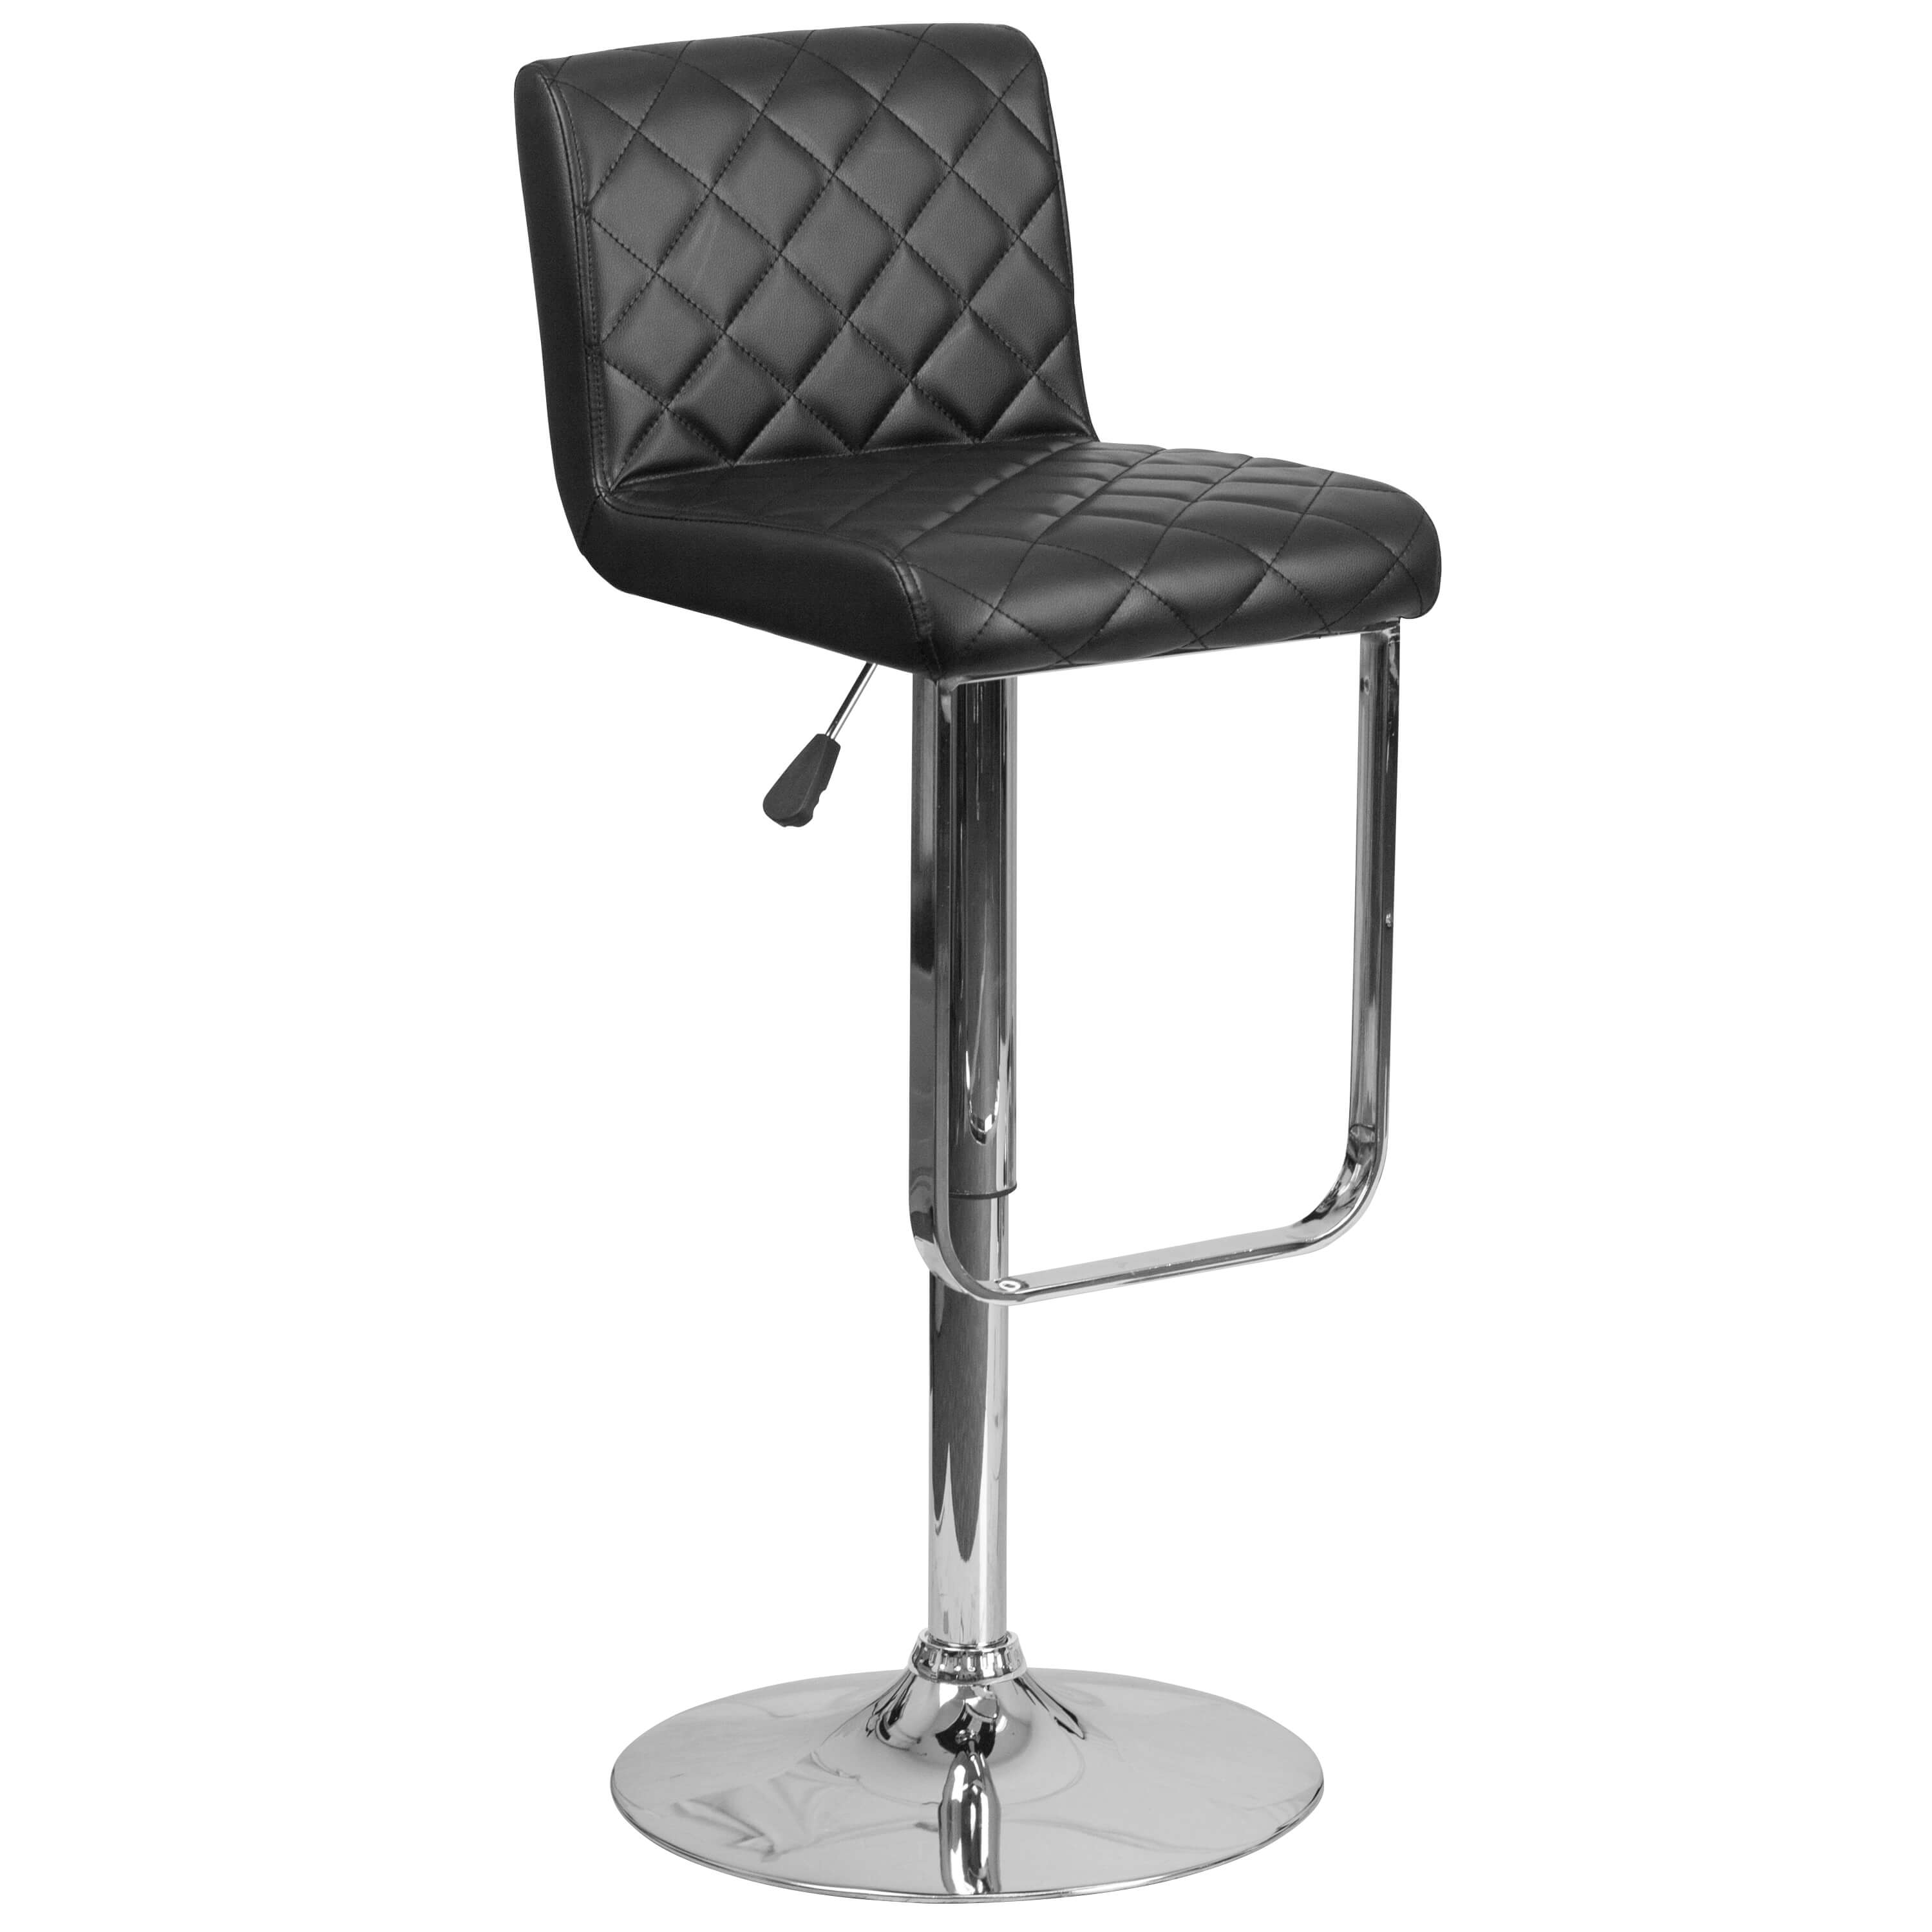 Cafe chairs CUB DS 8101 BK GG FLA